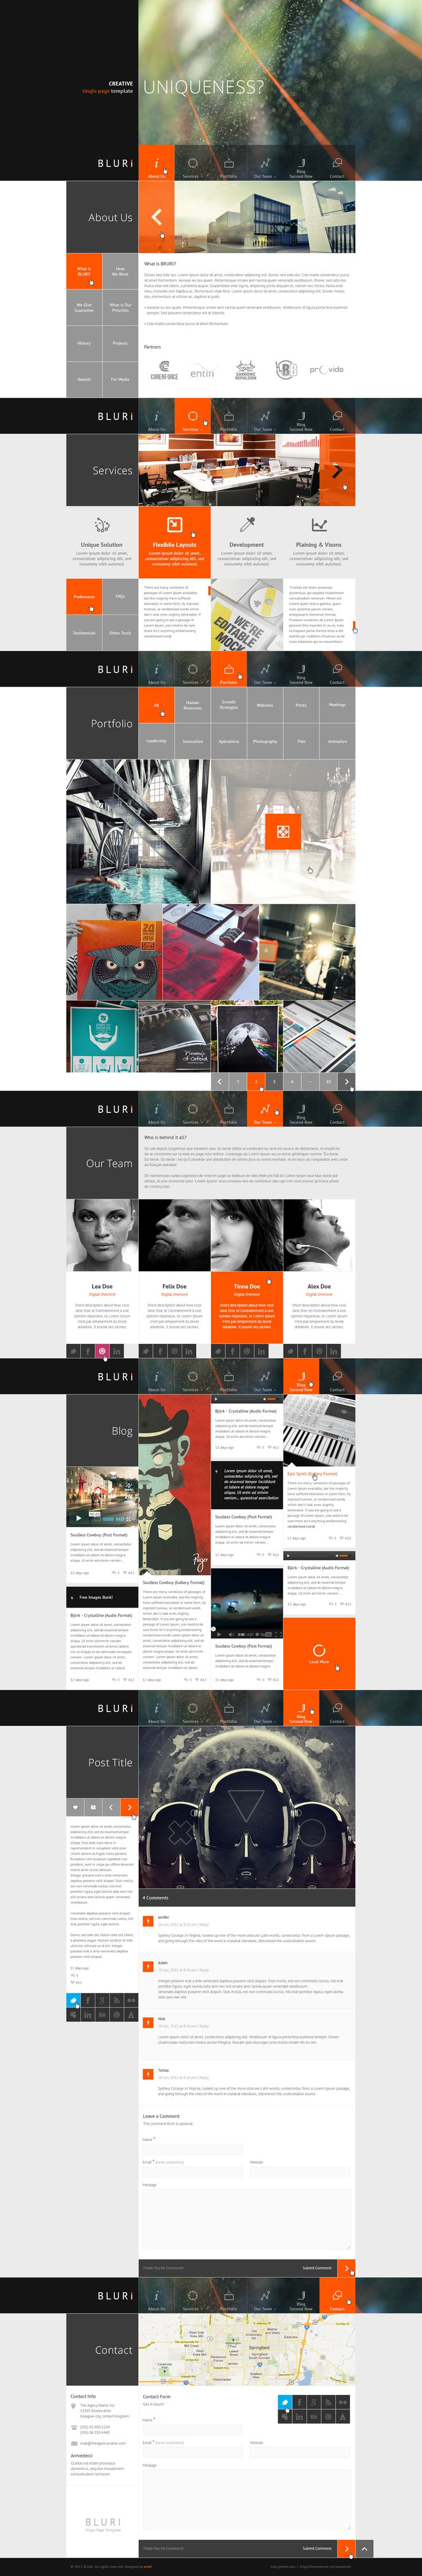 http://themeforest.net/item/bluri-single-page-template/3882654?WT.ac=category_thumb.seg_1=category_thumb.z_author=themebazaar Get this template from: http://themeforest.net/?ref=Vision7Studio